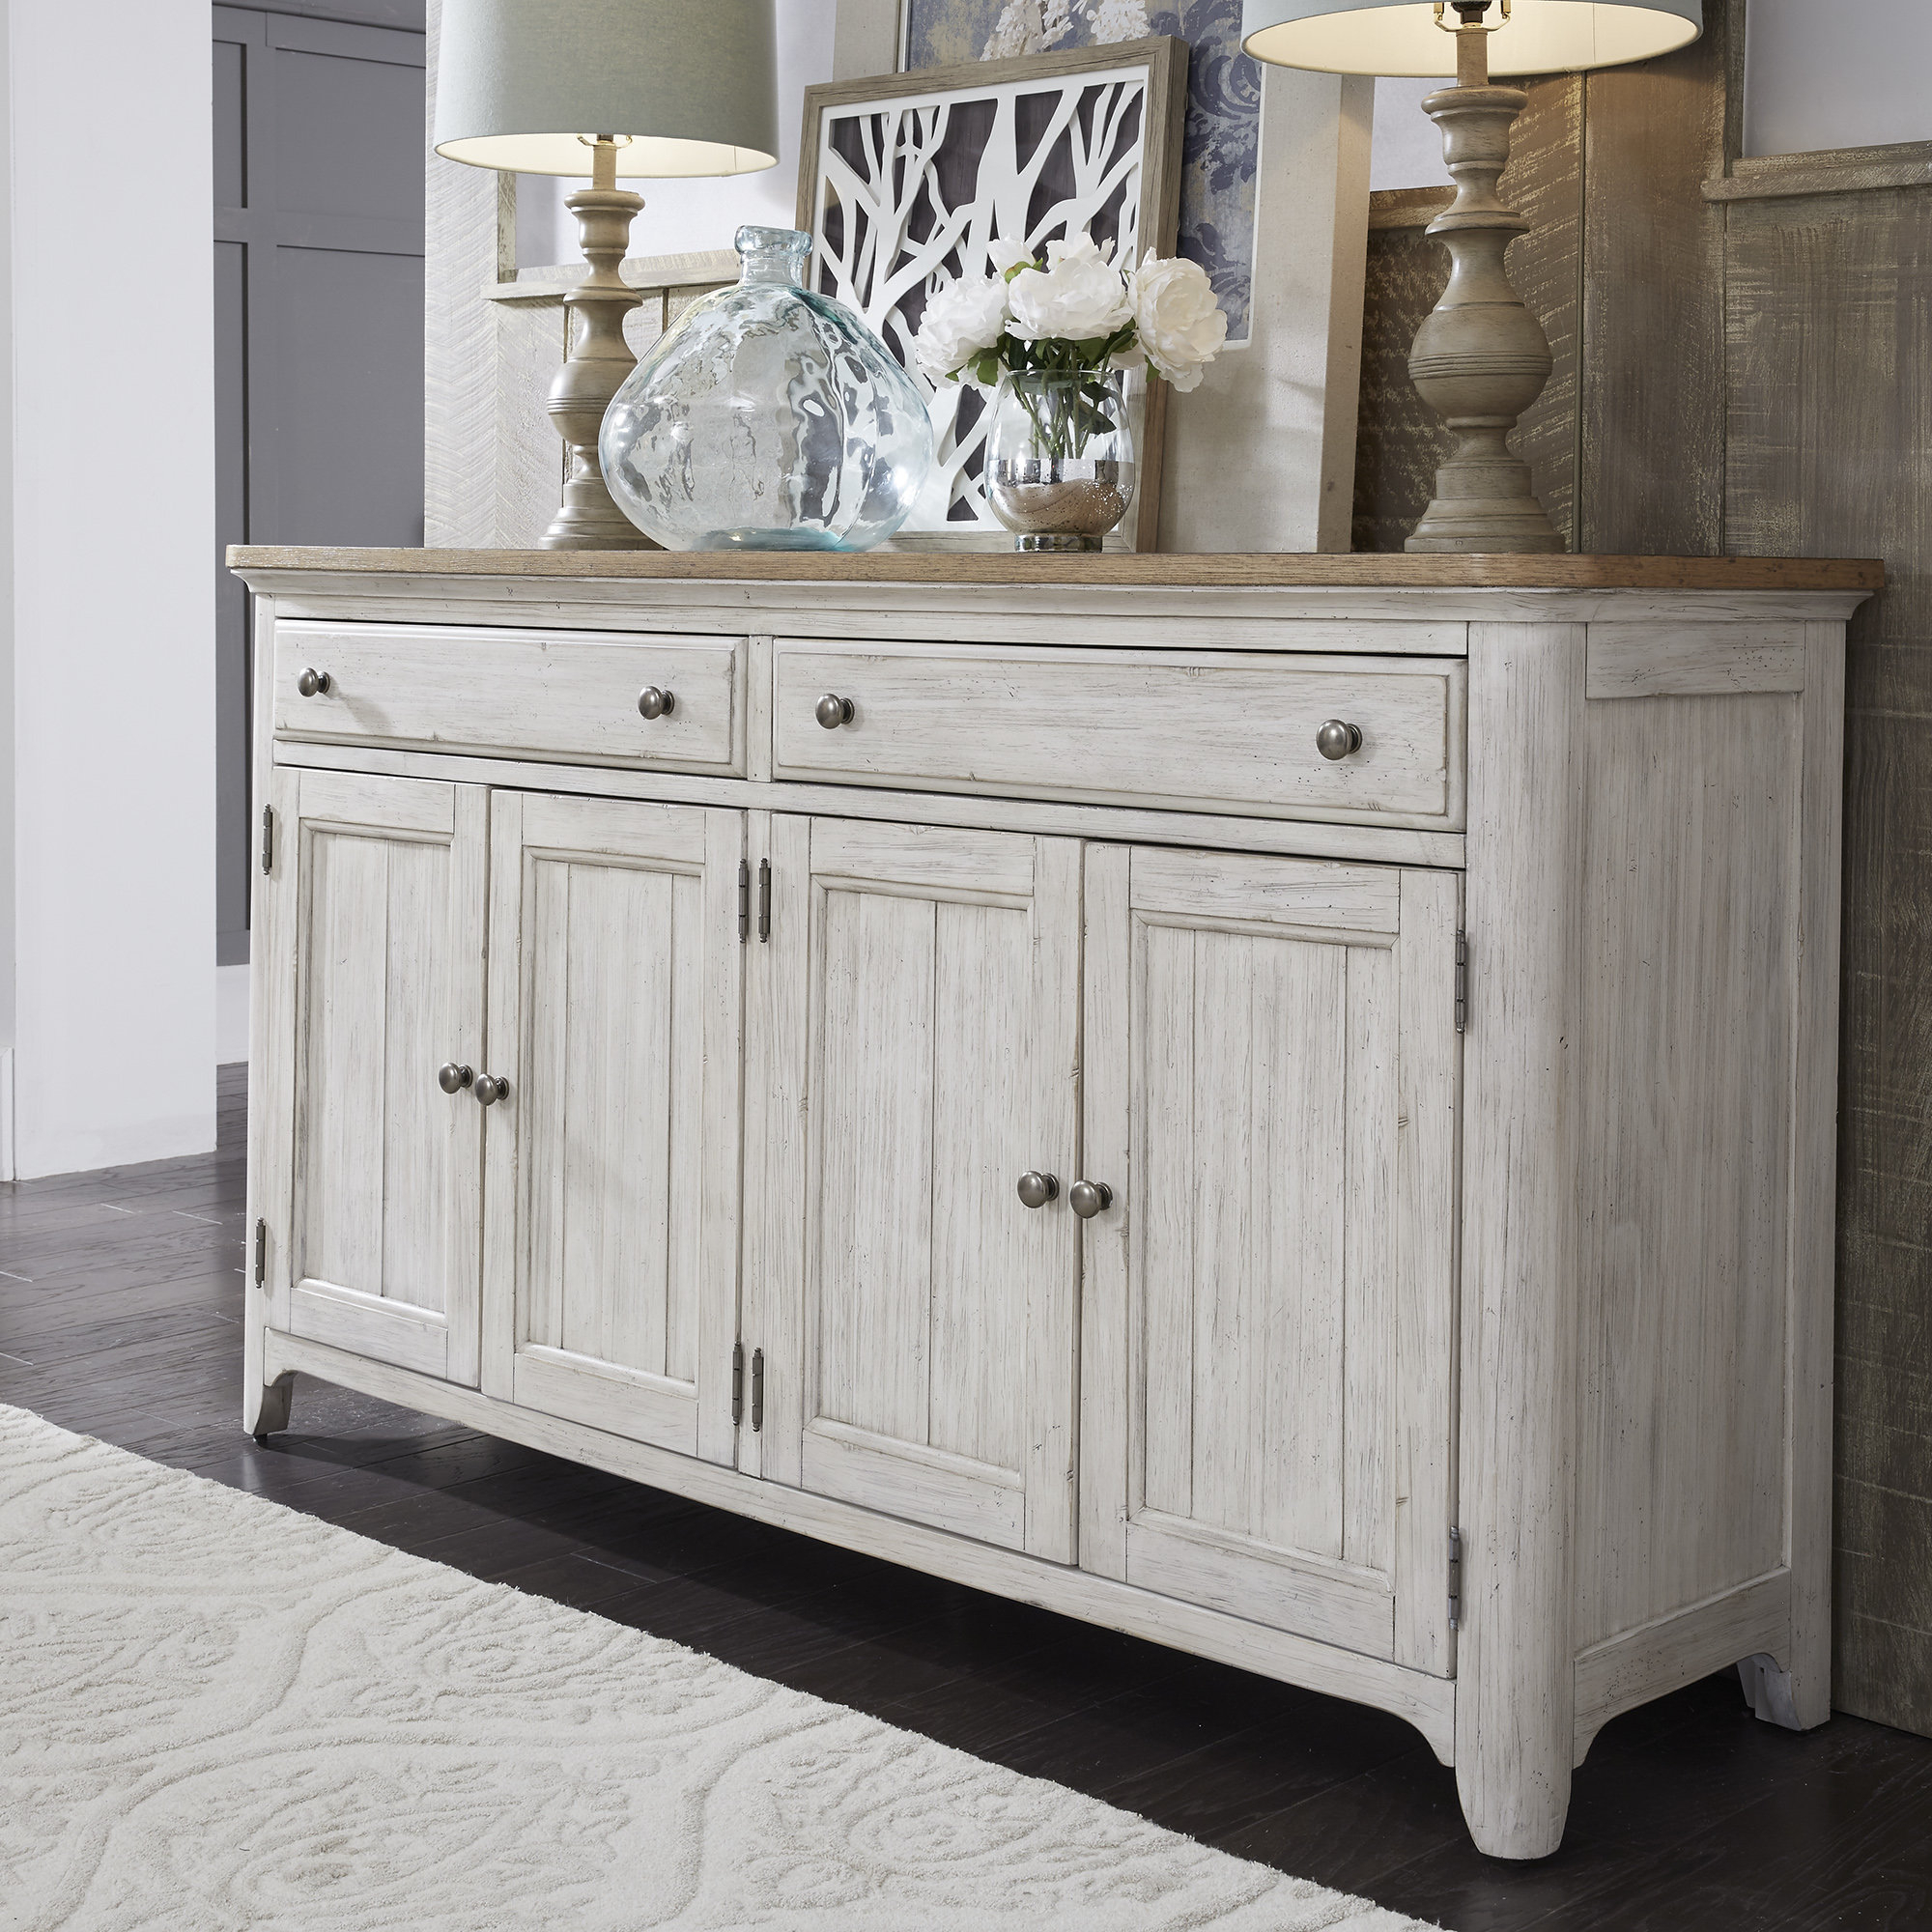 Farmhouse & Rustic Silverware Storage Equipped Sideboards Inside Payton Serving Sideboards (View 6 of 20)